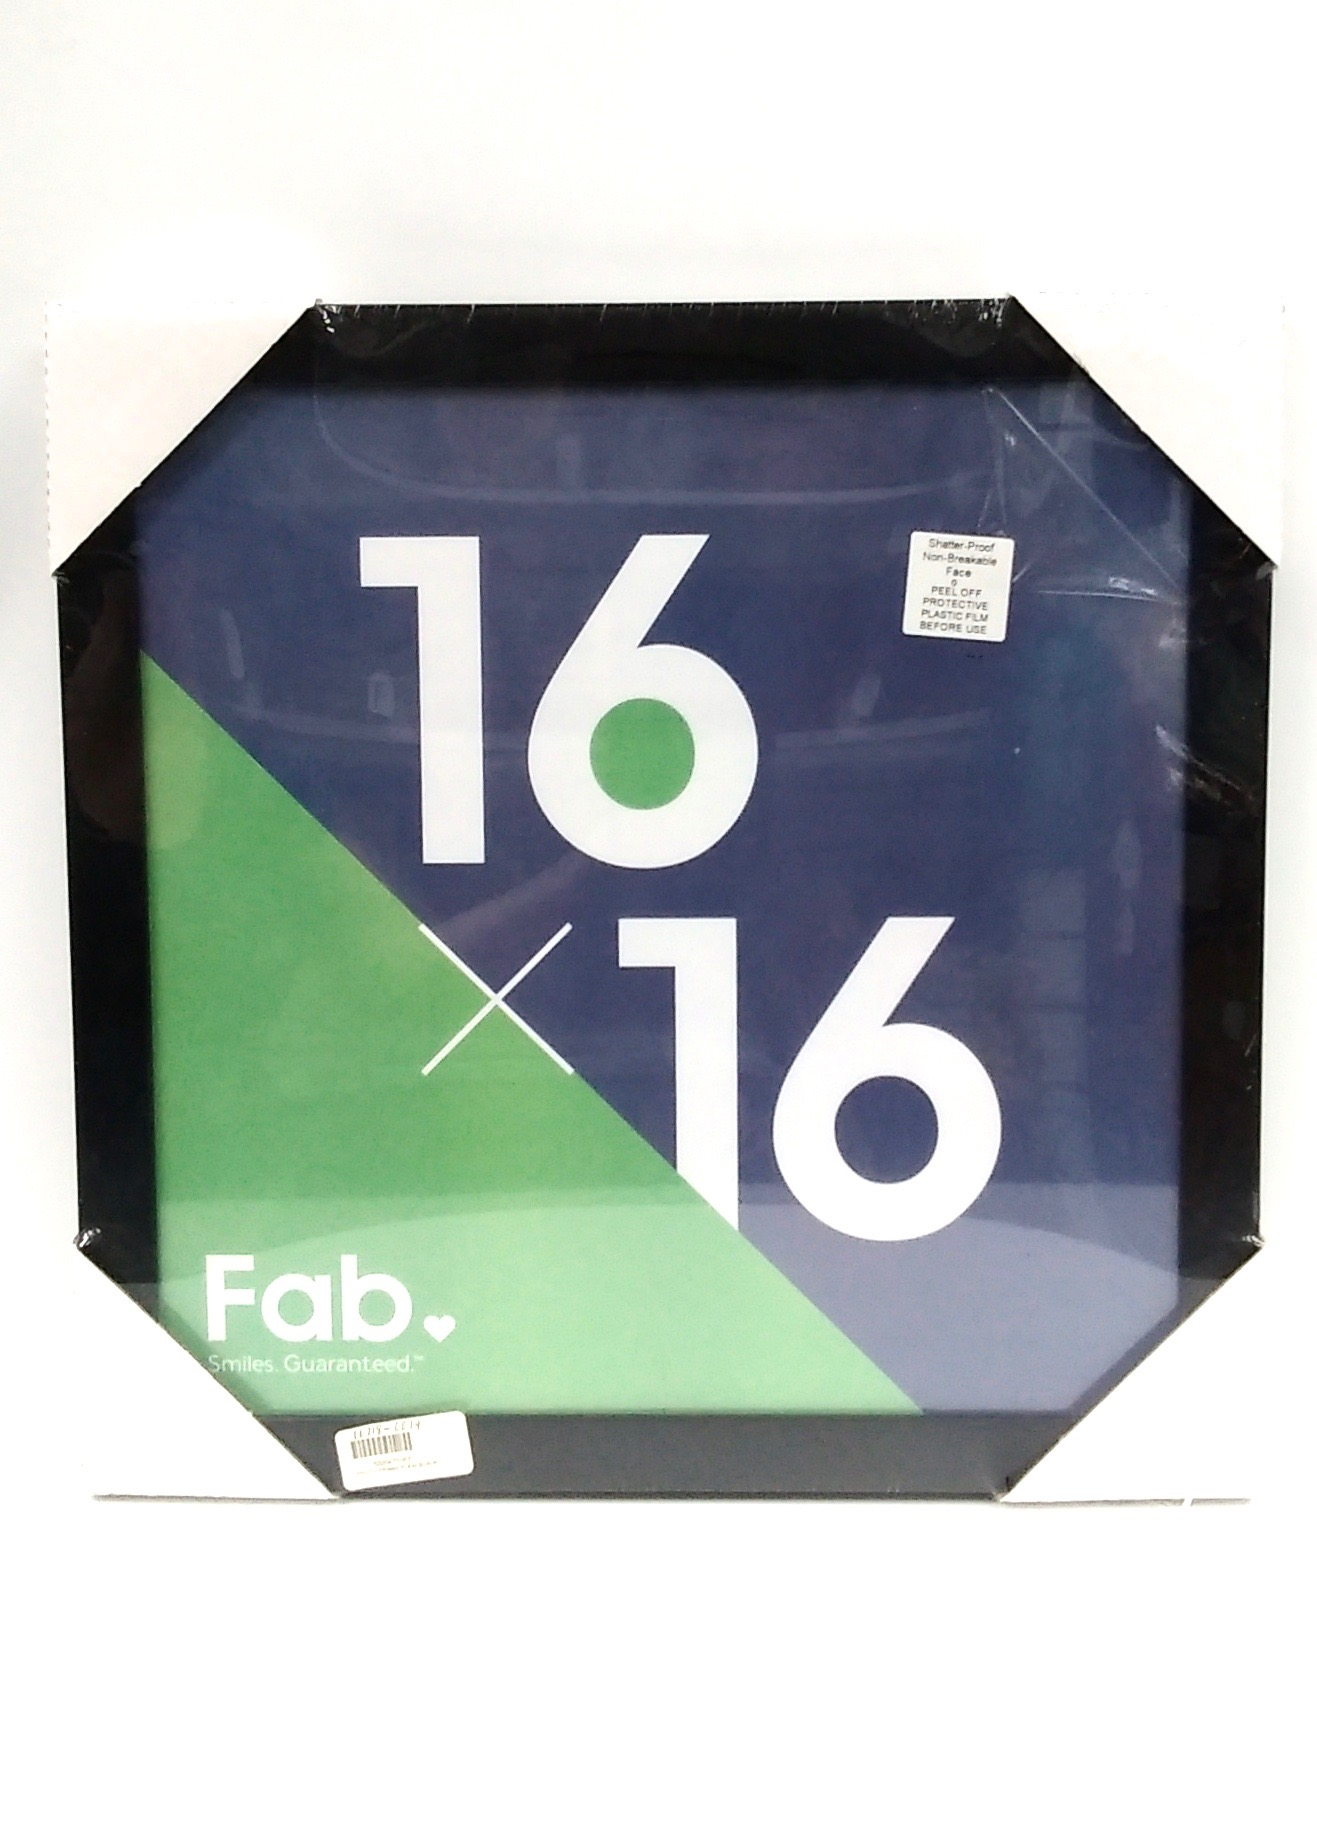 (471067) Photo Frame Plexi Black 16x16